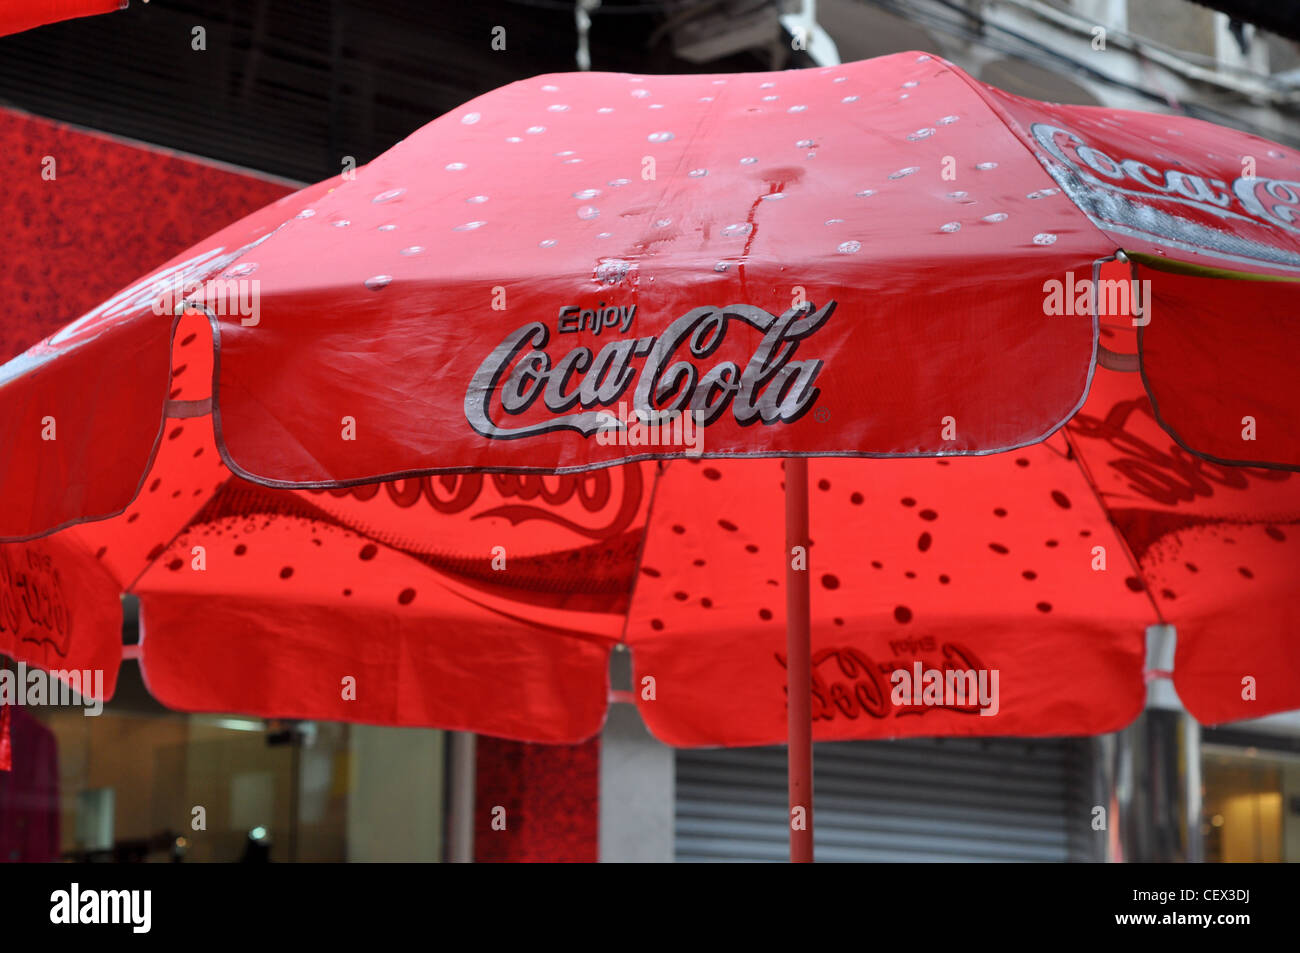 d7a5af21 Coca Cola Umbrella Stock Photos & Coca Cola Umbrella Stock Images ...